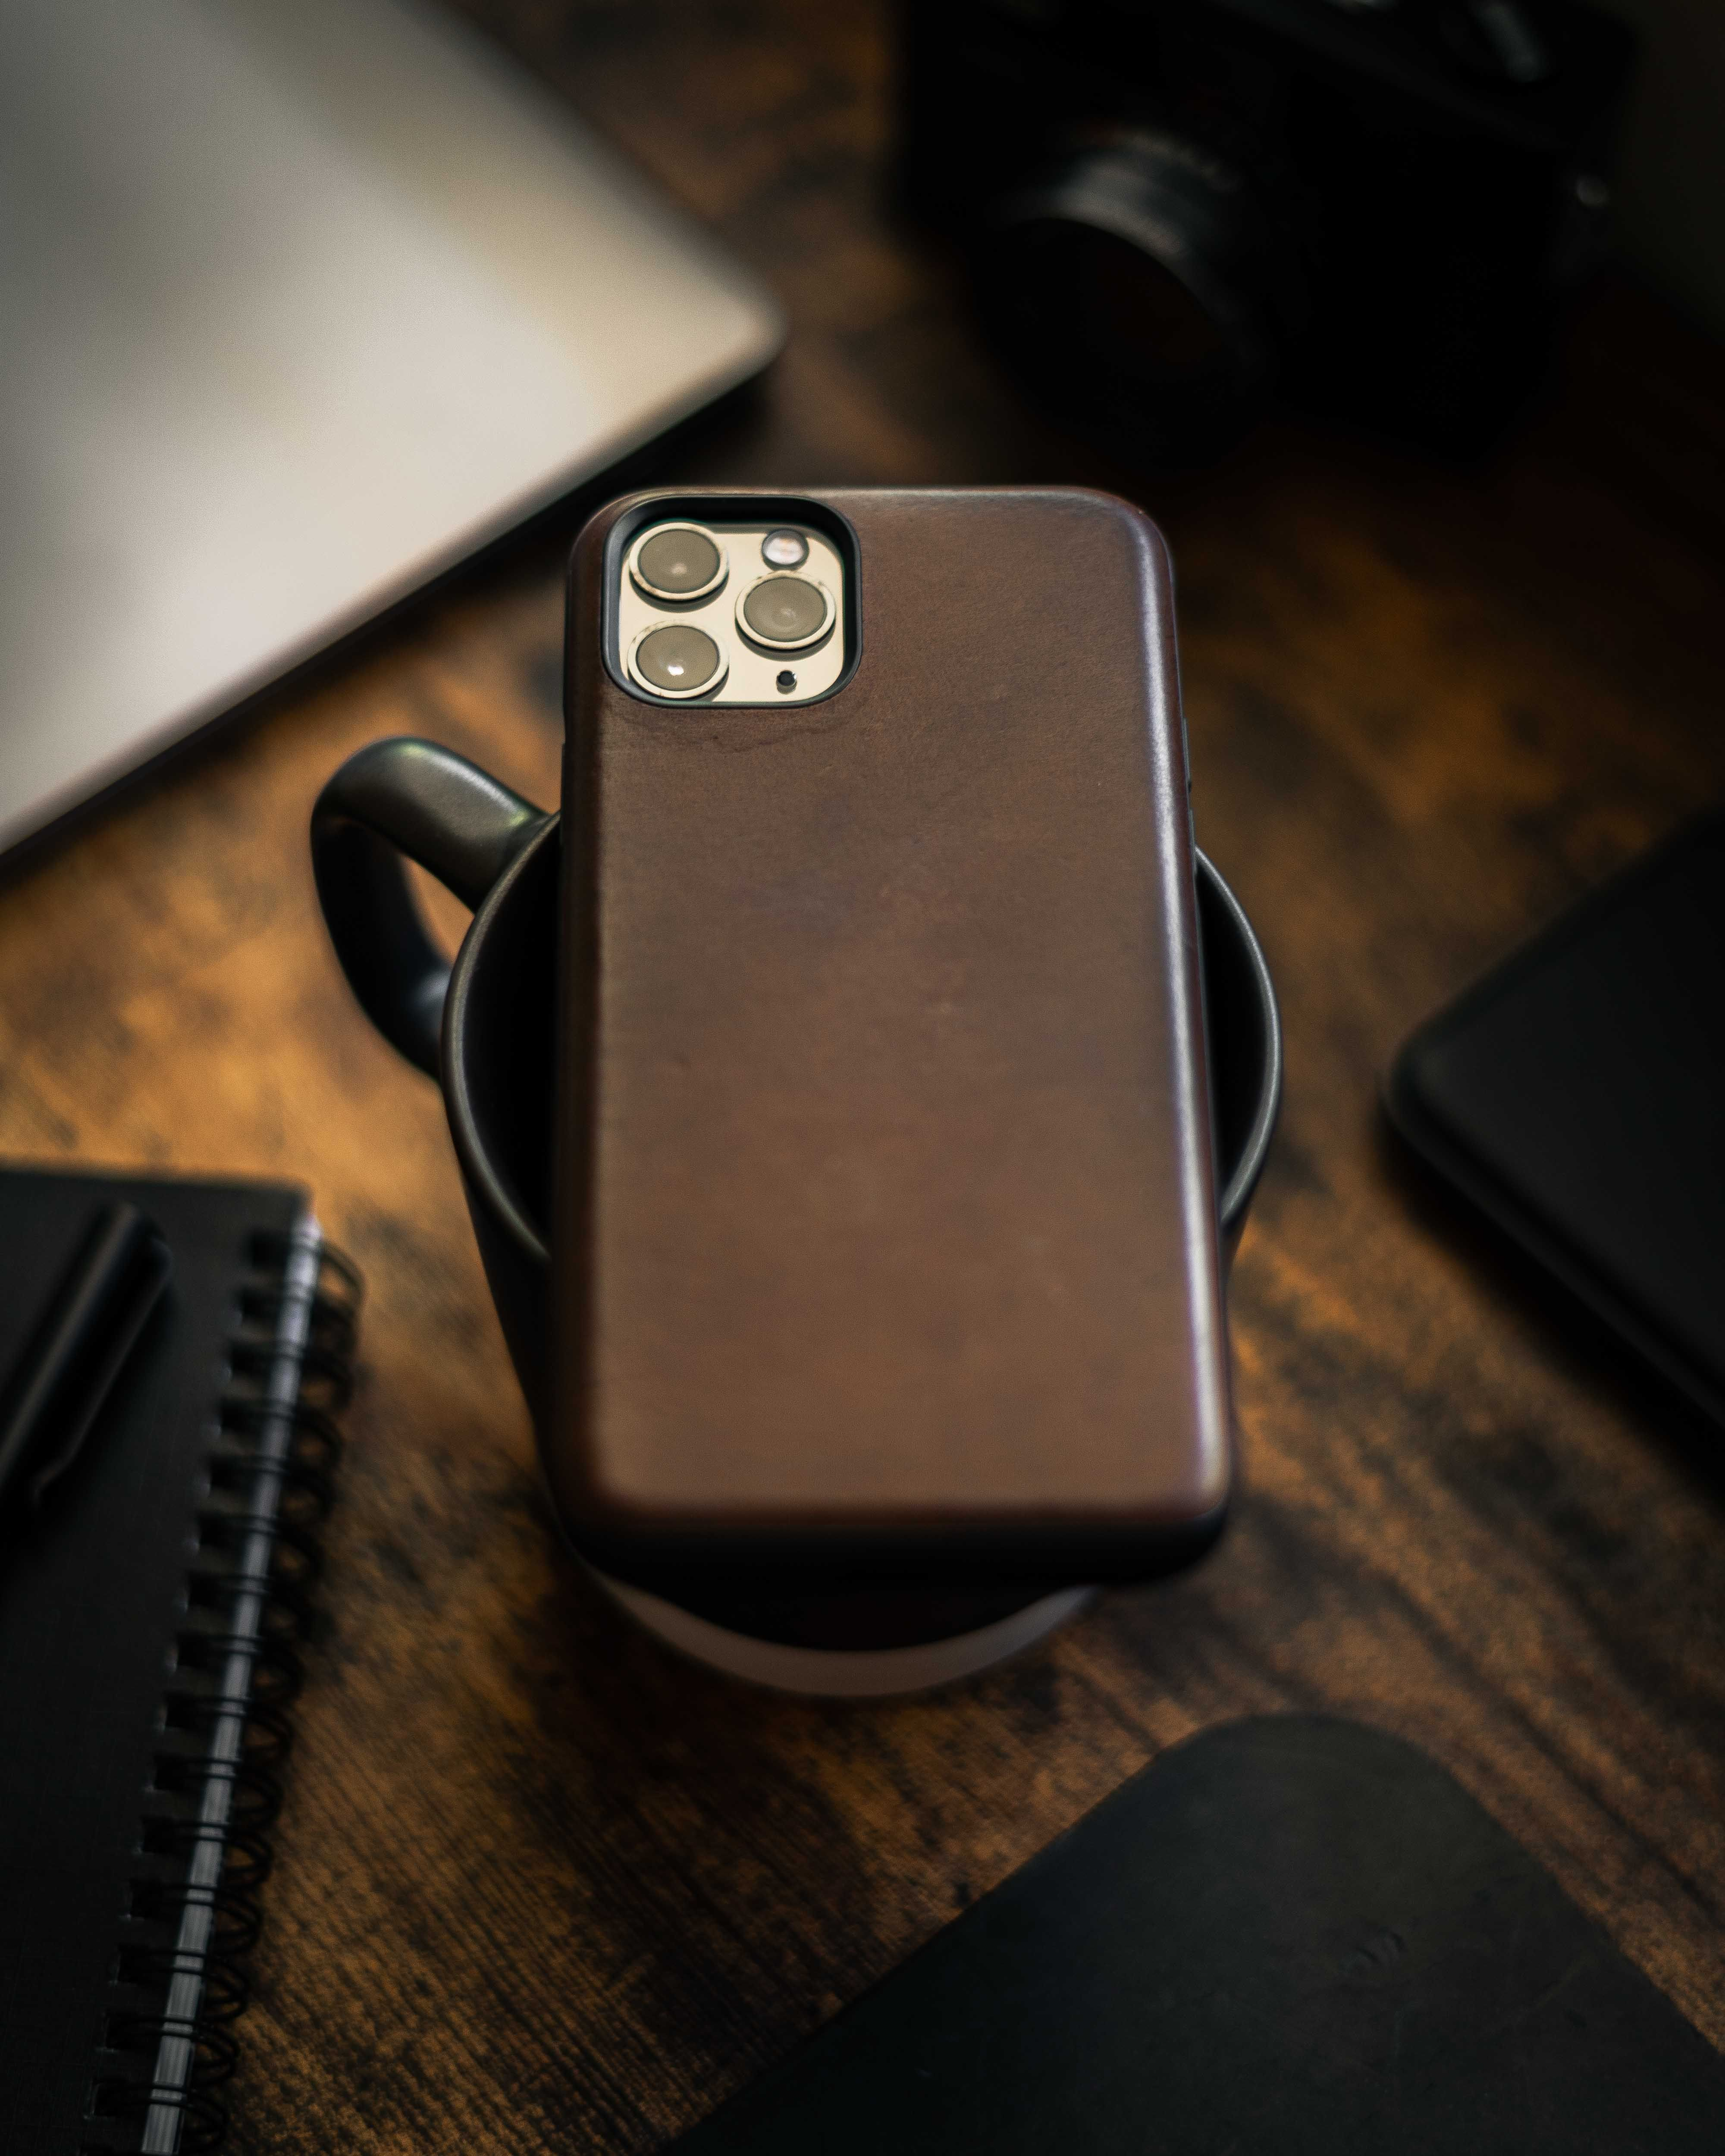 Premium Horween Leather case for iPhone that looks great